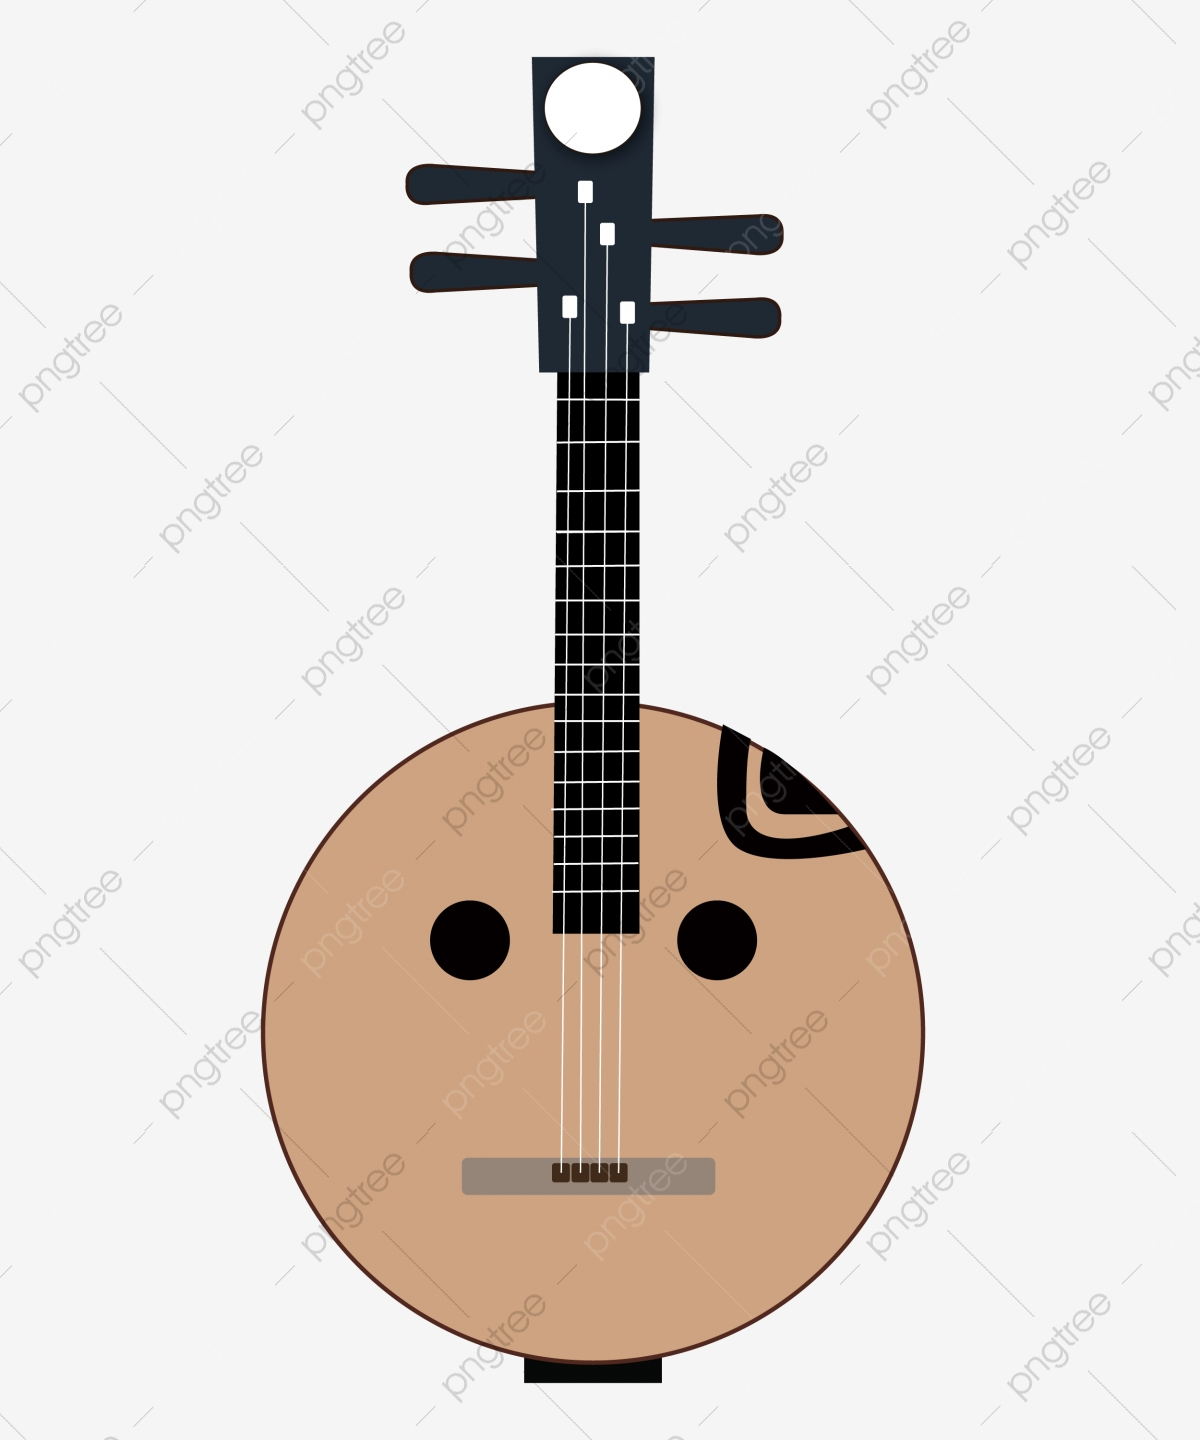 Cartoon Pipa Instrument Illustration Chinese Musical Instruments Yellow Bandits Traditional Musical Instruments Png And Vector With Transparent Background For Free Download